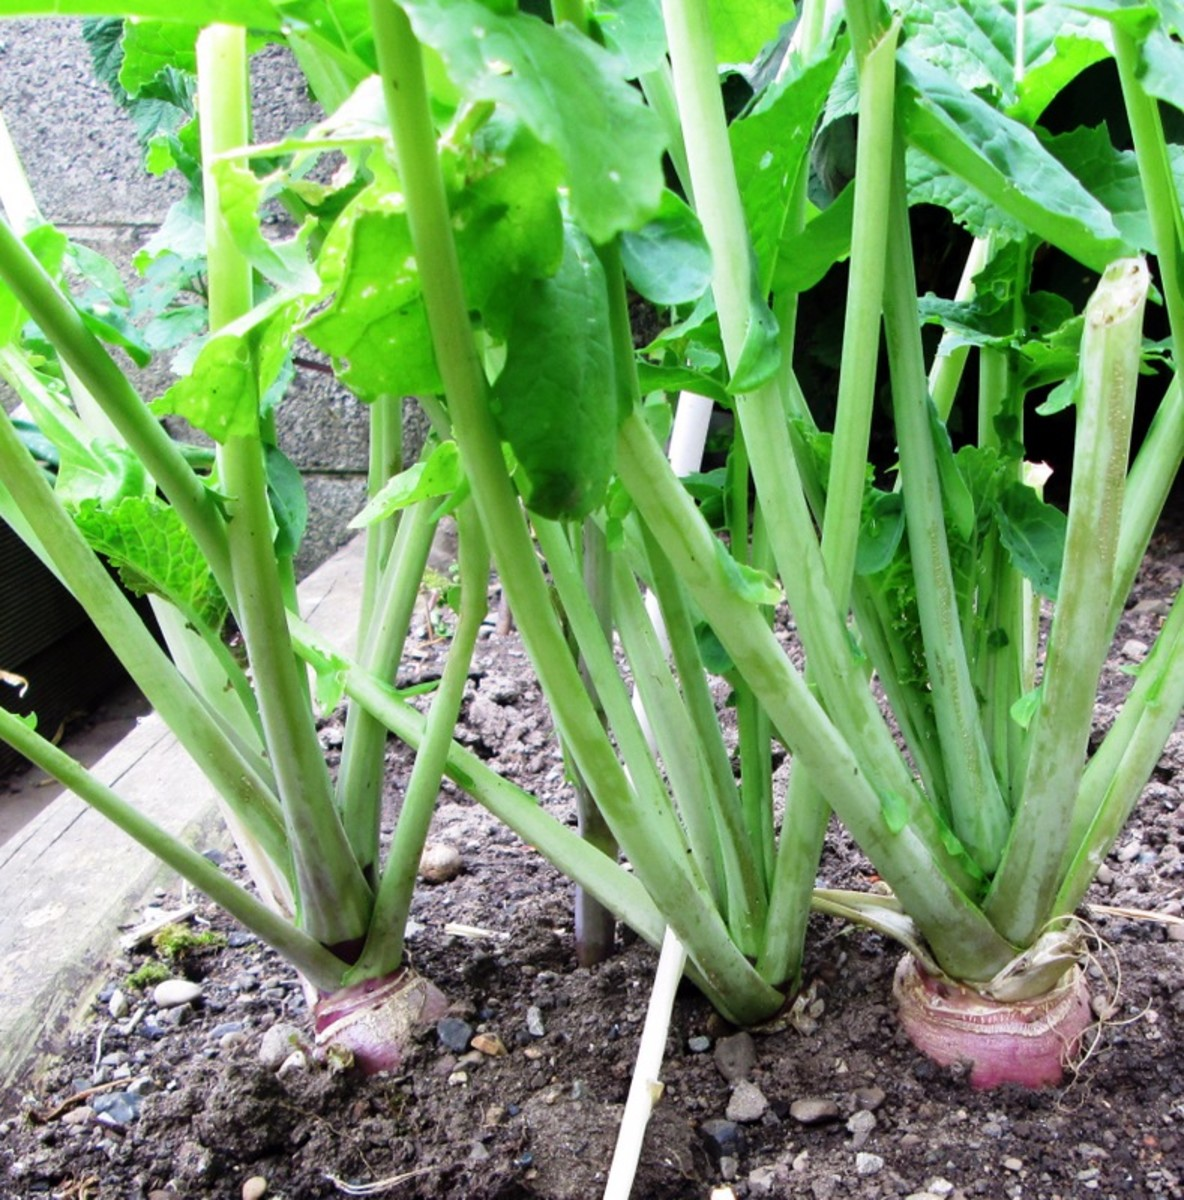 Gardening: How to Plant, Grow and Harvest Swede Turnips